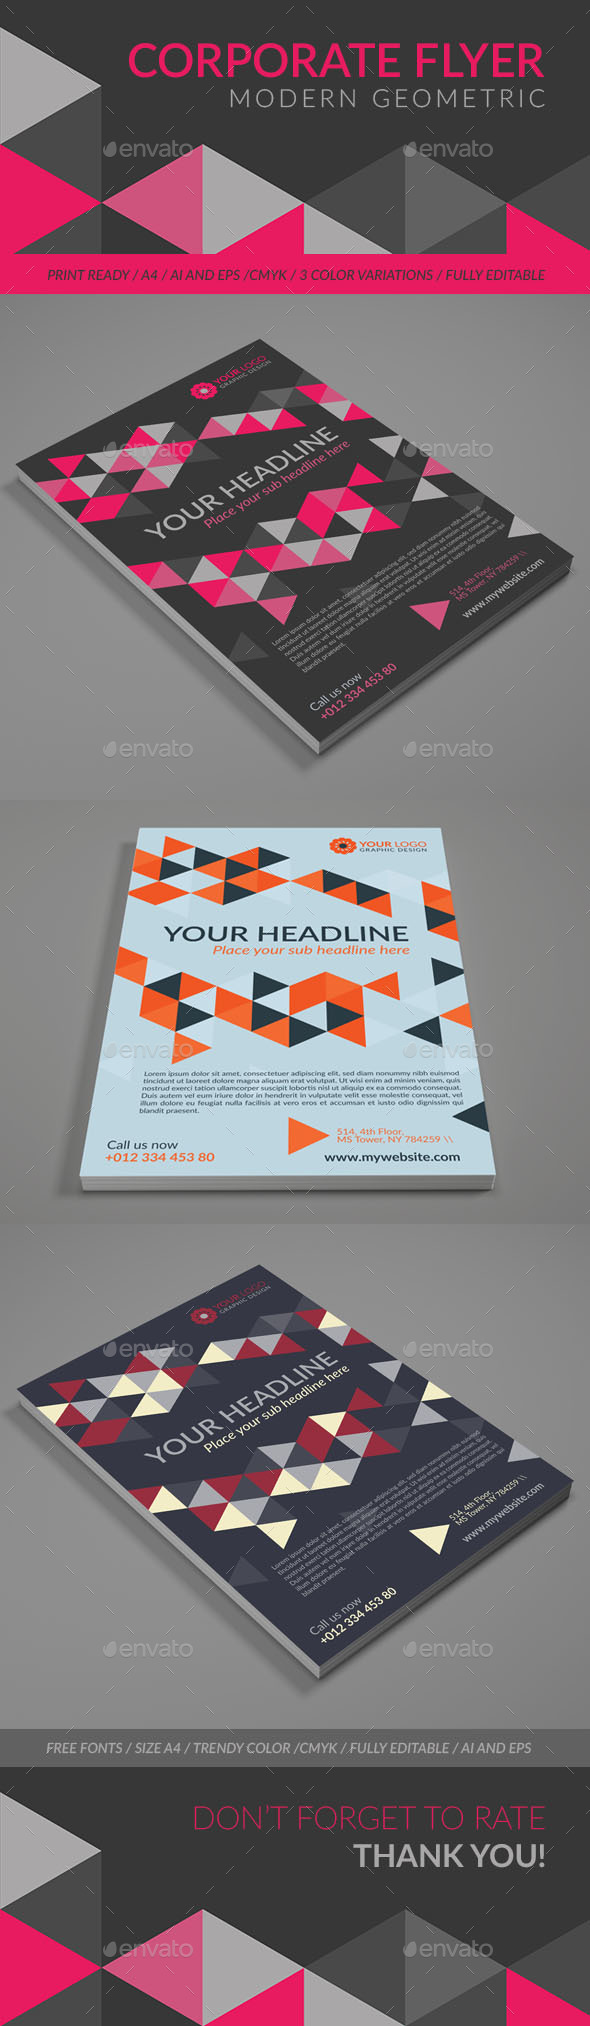 Modern Geometric Corporate Flyer with Triangle Pattern. - Corporate Flyers